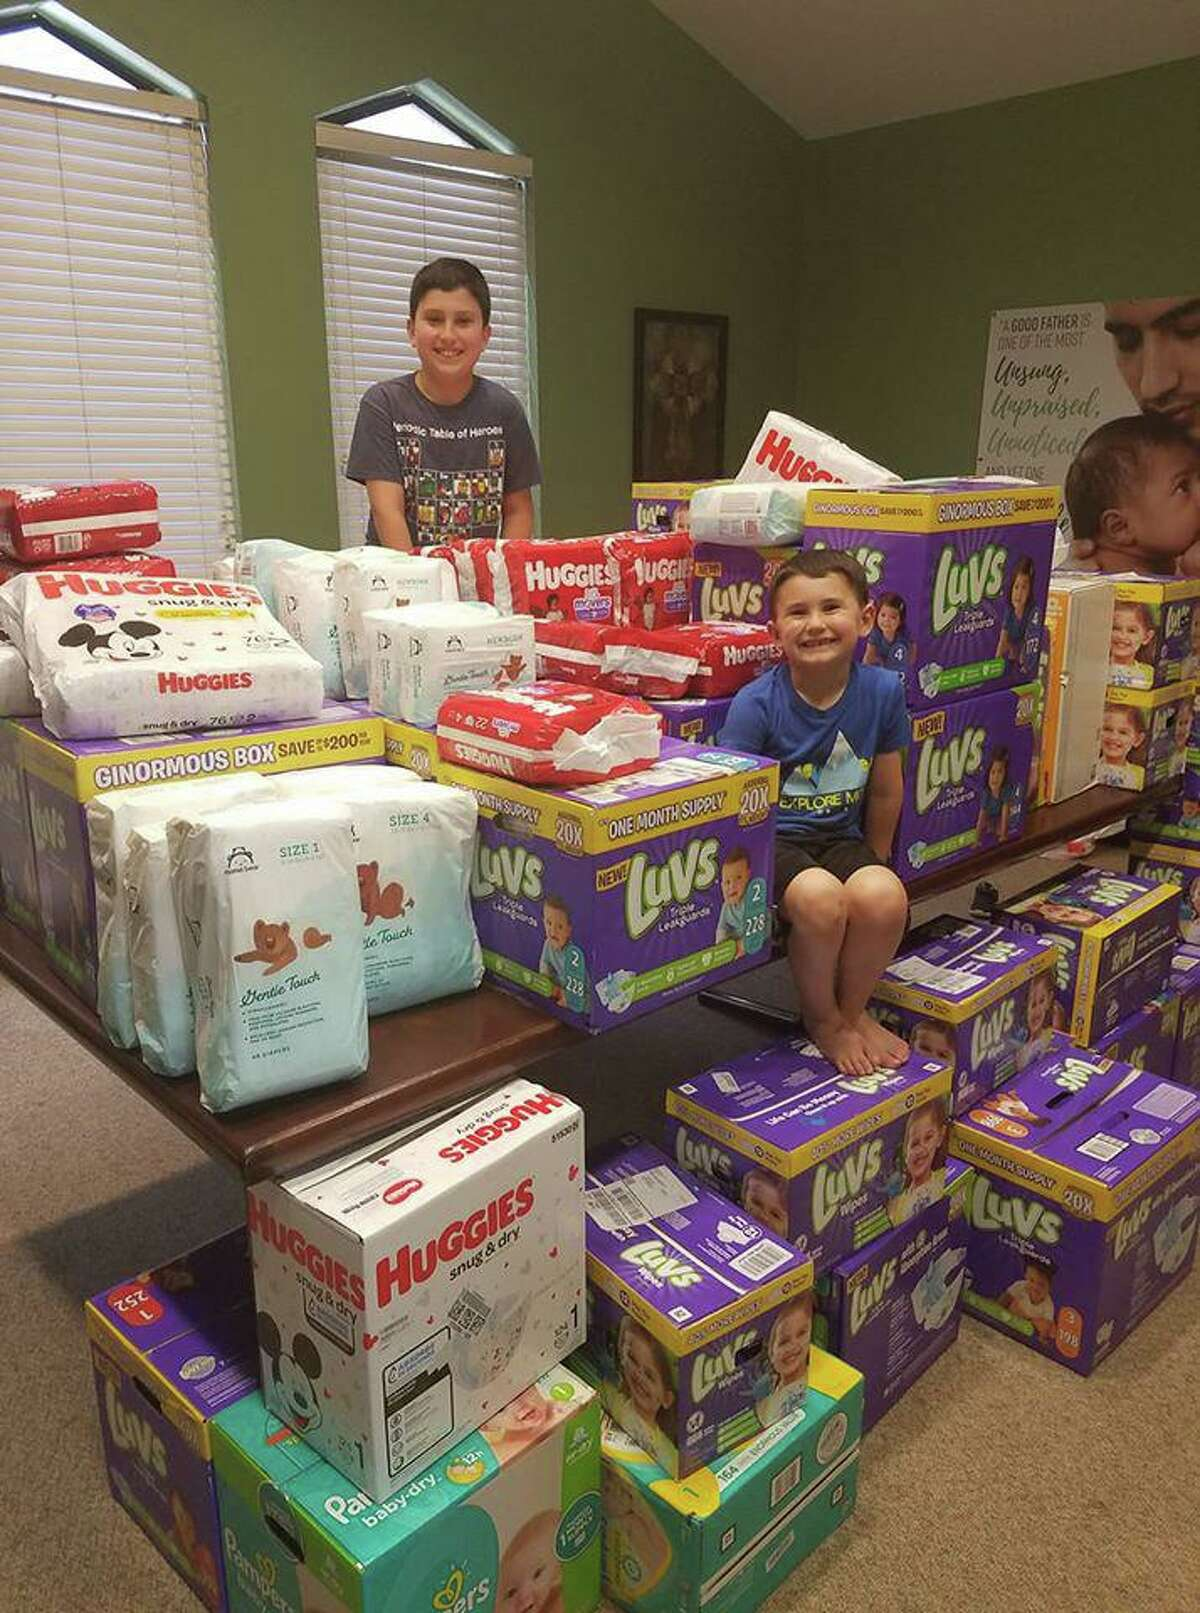 Jackson Goodman, 10, is all smiles in back while little brother Greg Goodman, 5, strikes a similar pose with the donations they have gathered for the Pregnancy Help Center of West Houston.